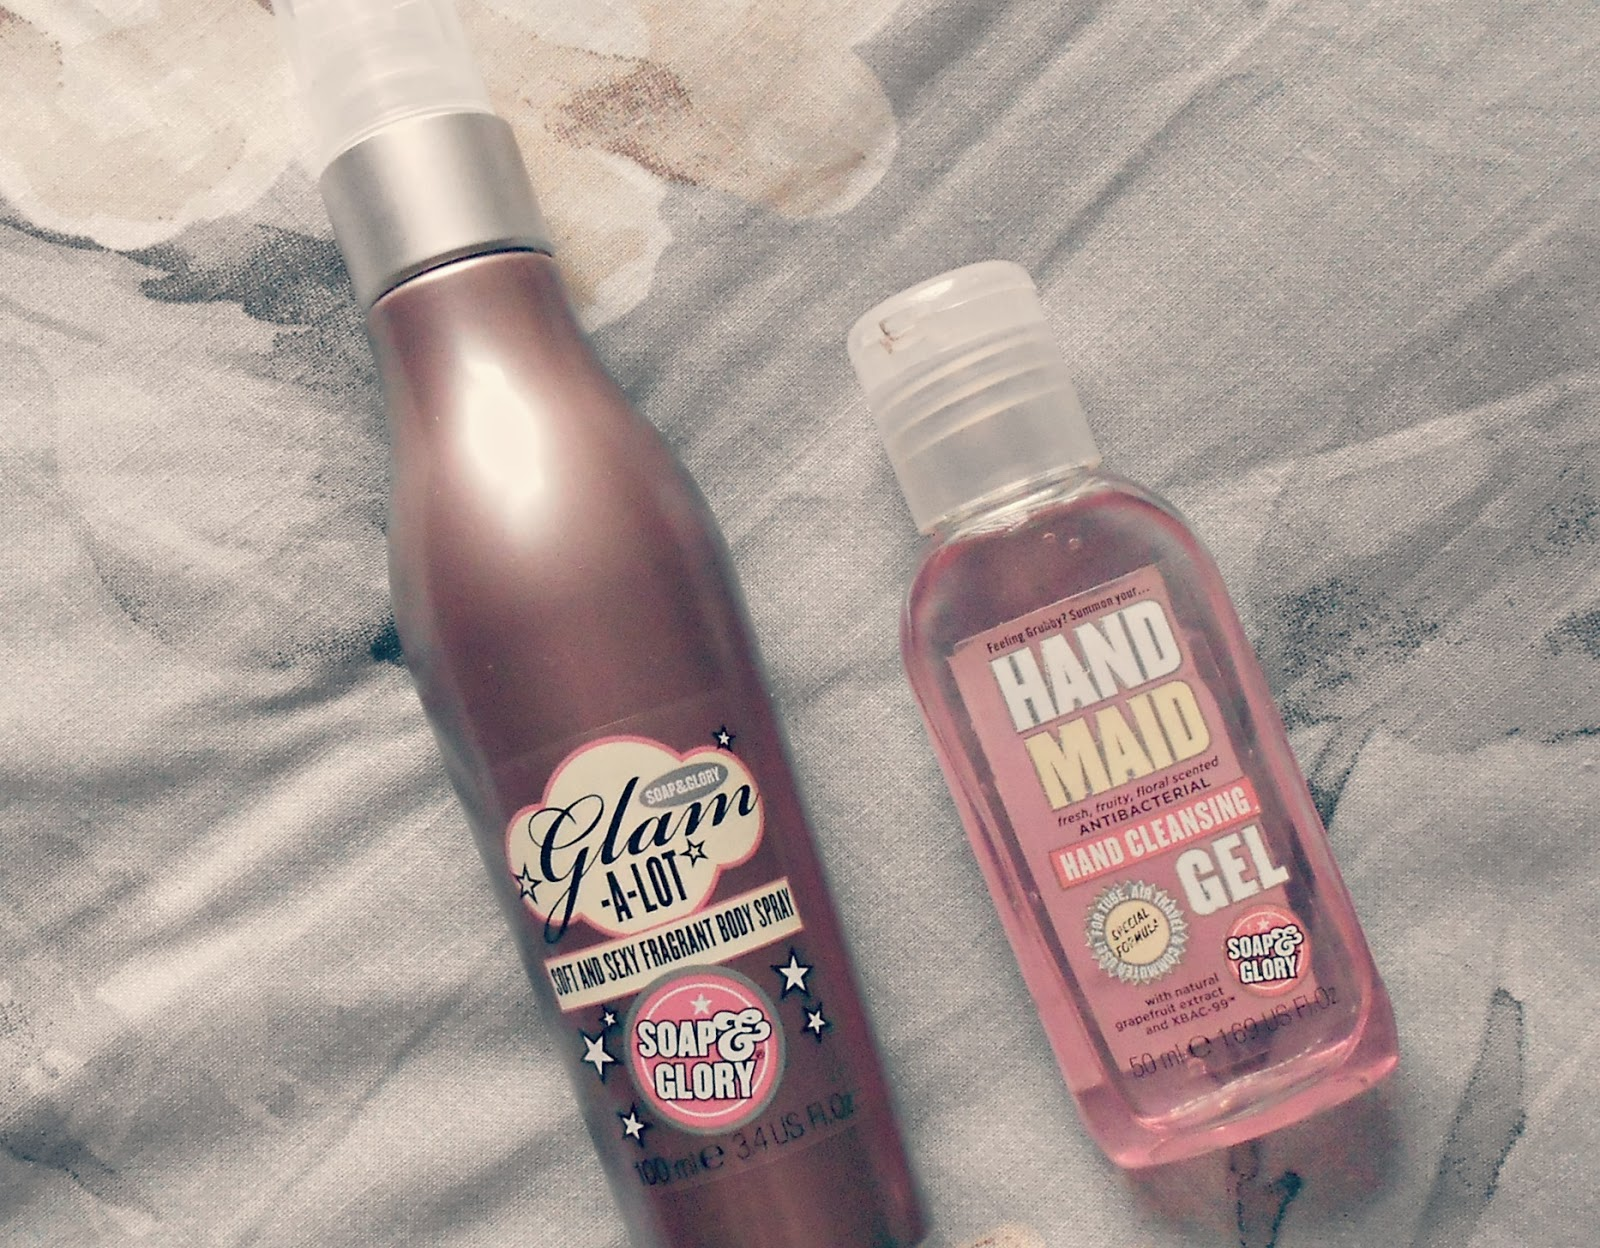 Soap&Glory body spray and hand gel